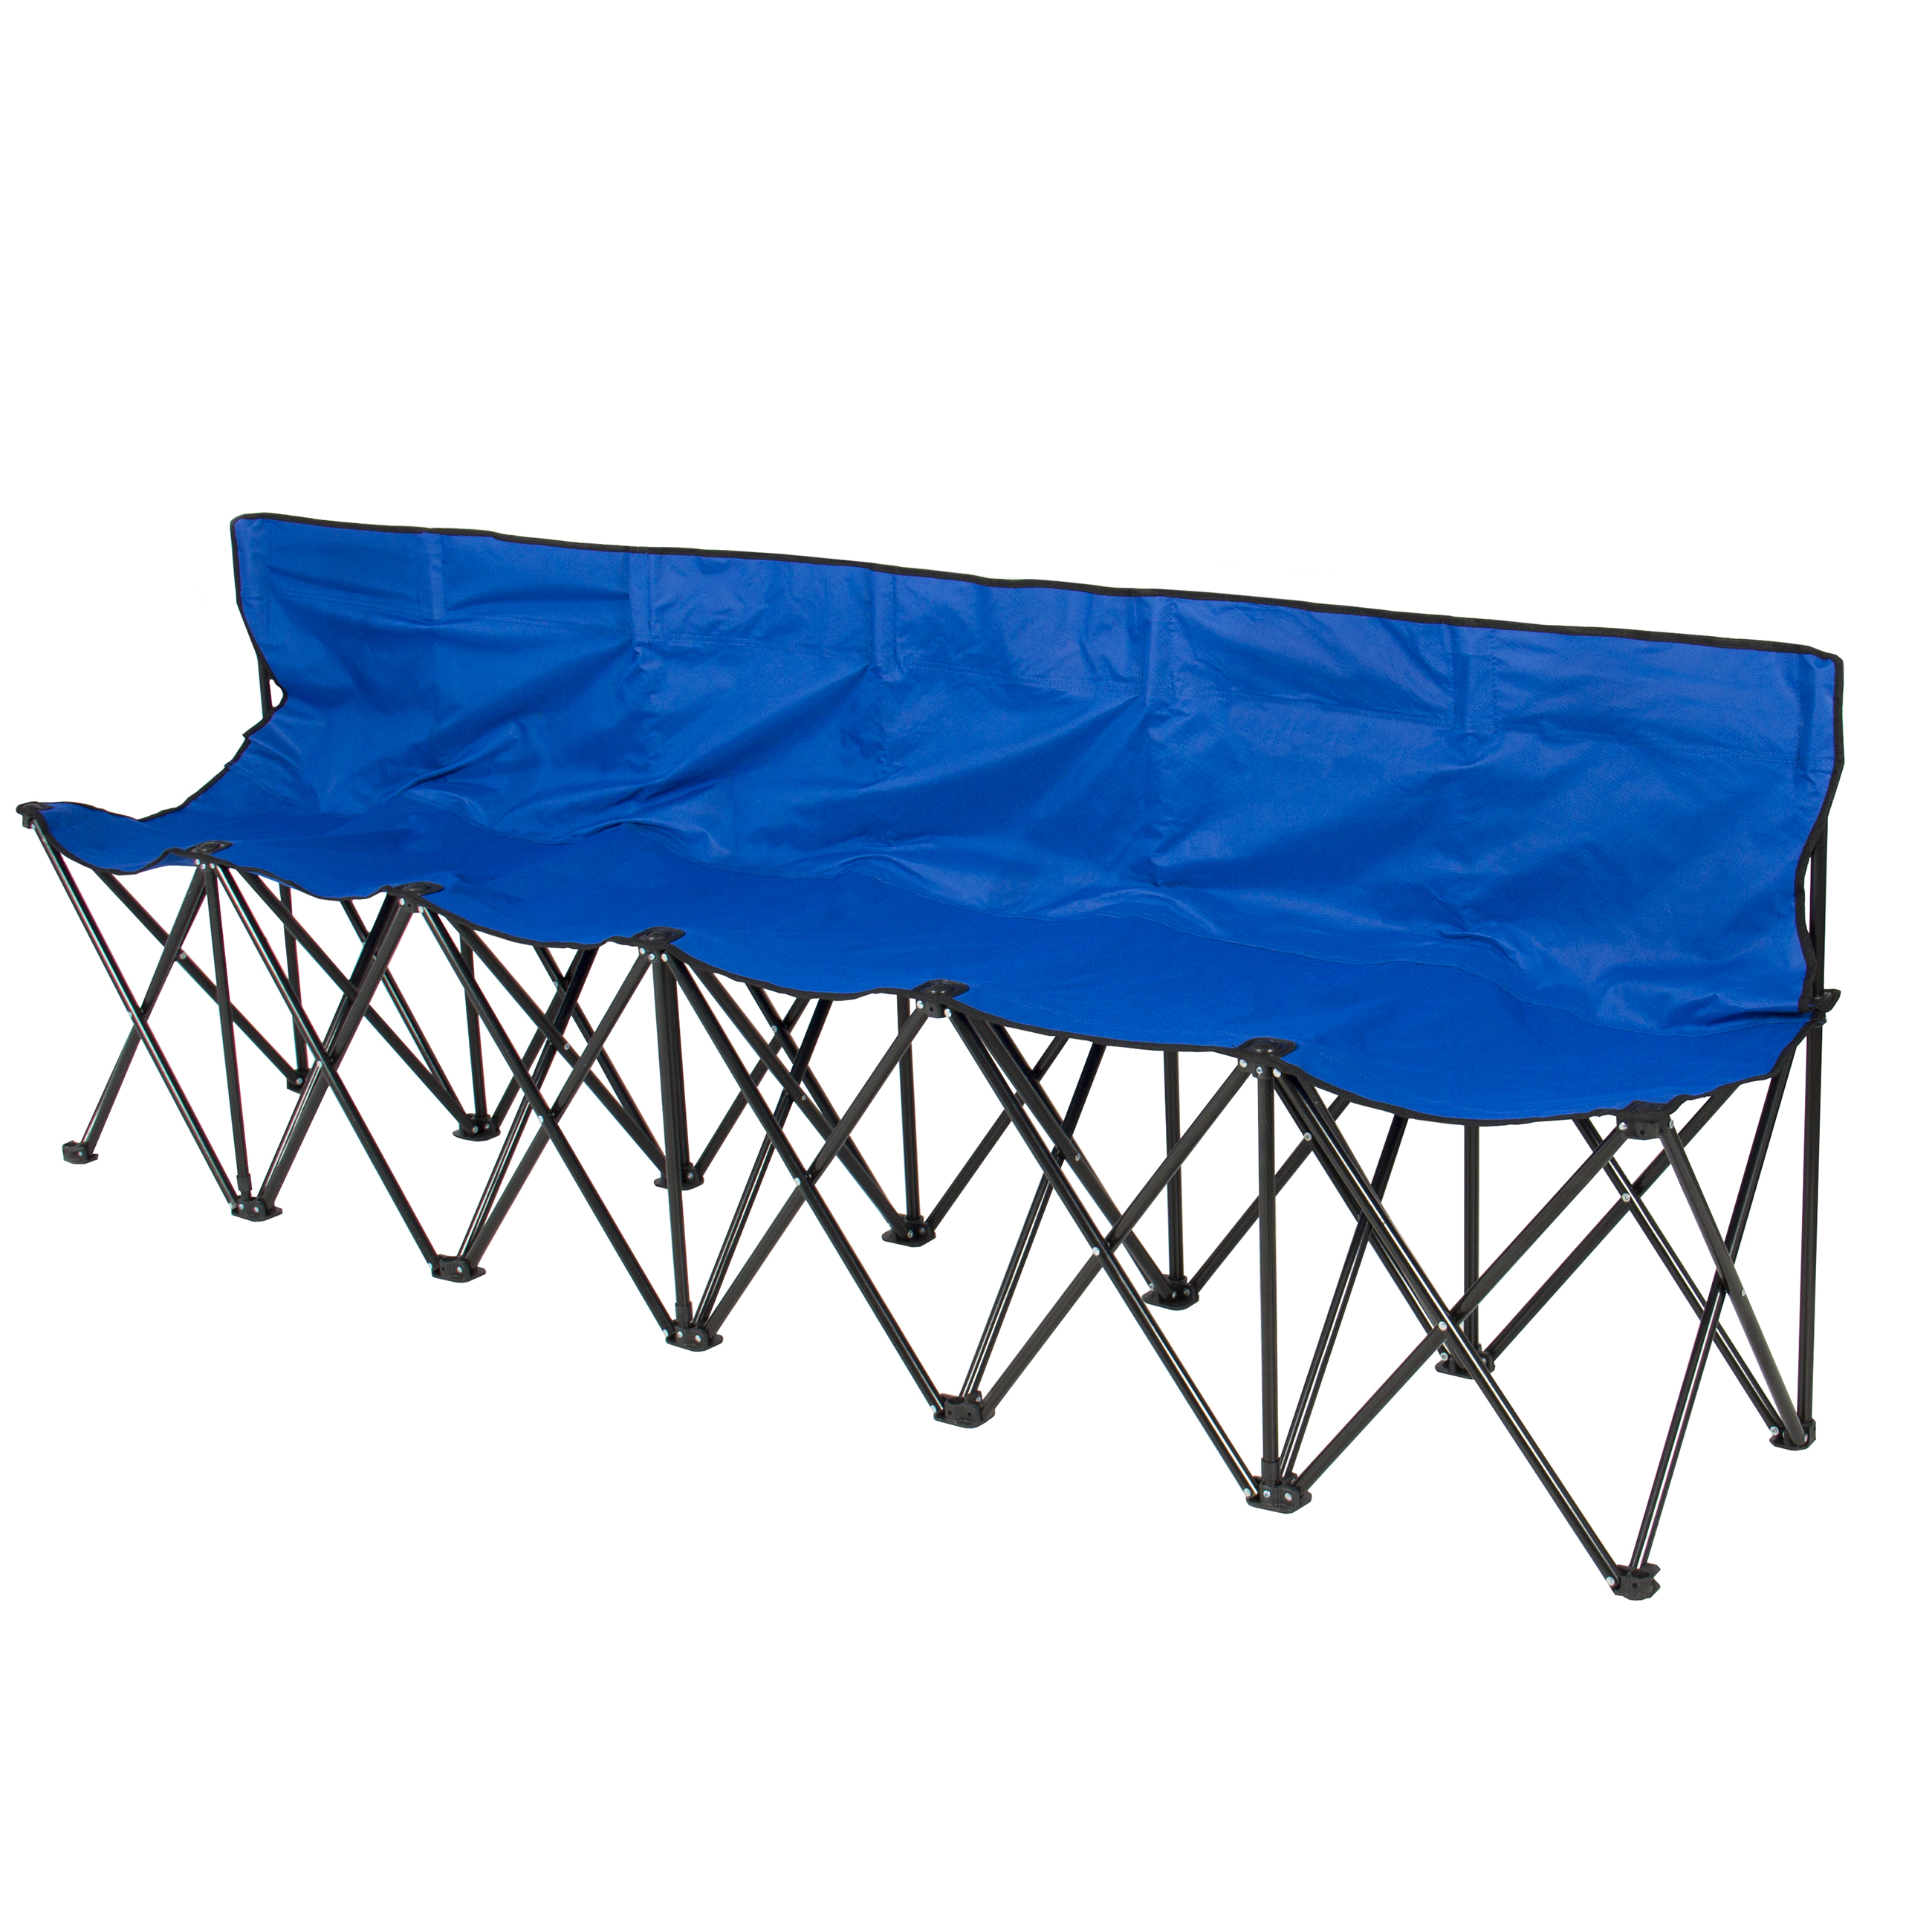 Best Choice Products 6-Seat Portable Folding Bench for Camping, Sports Sideline w/ Steel Tube Frame, Carry Case - Blue